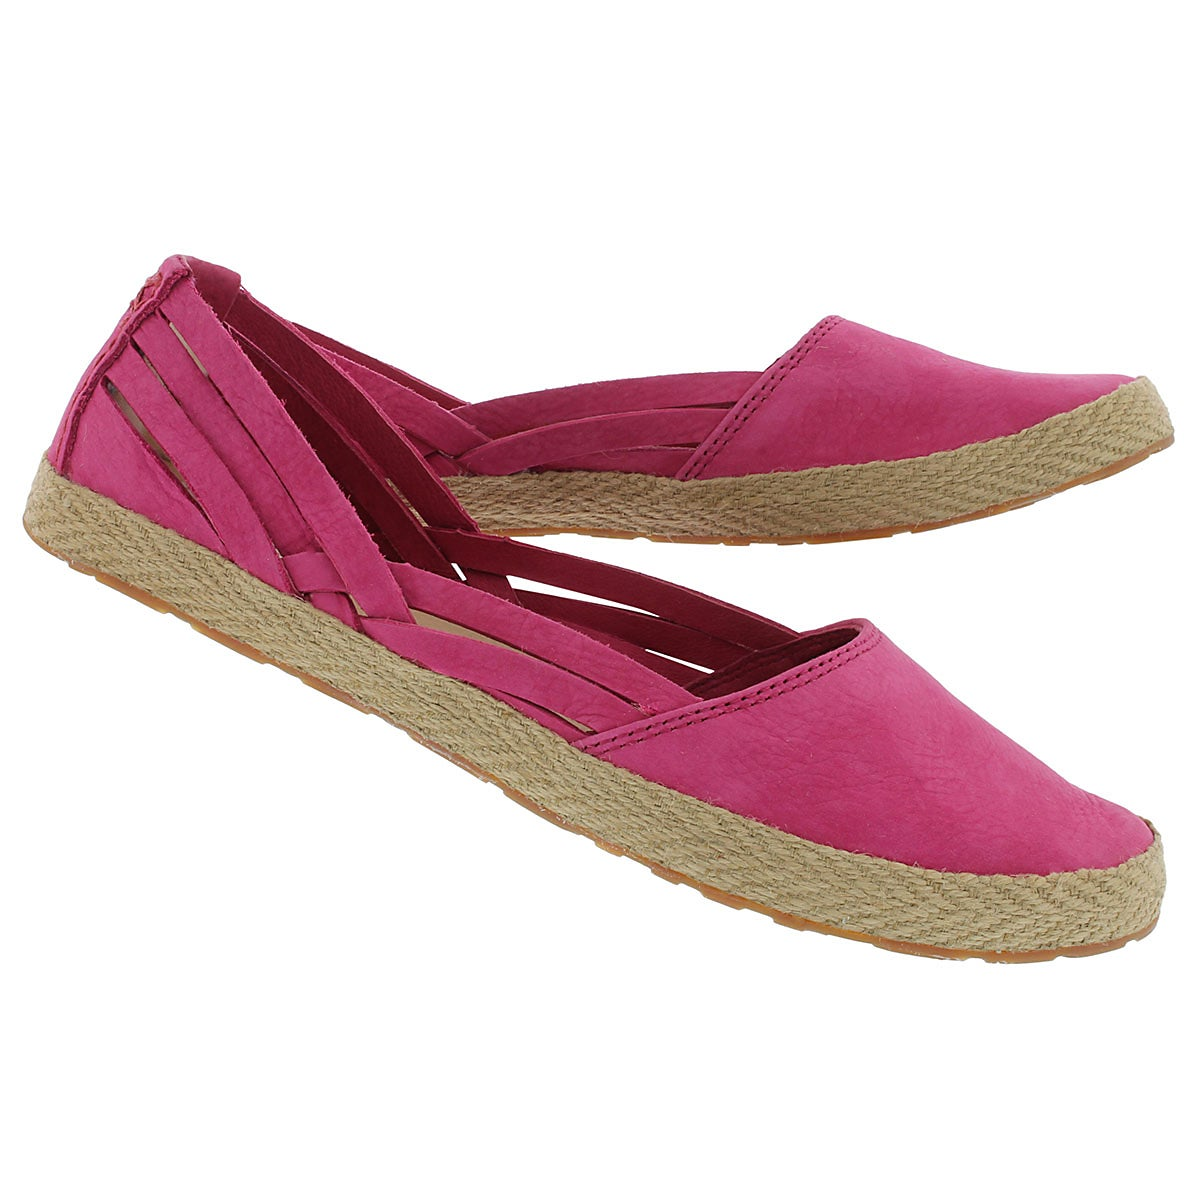 Lds Cicily tropical sunset slip on flat